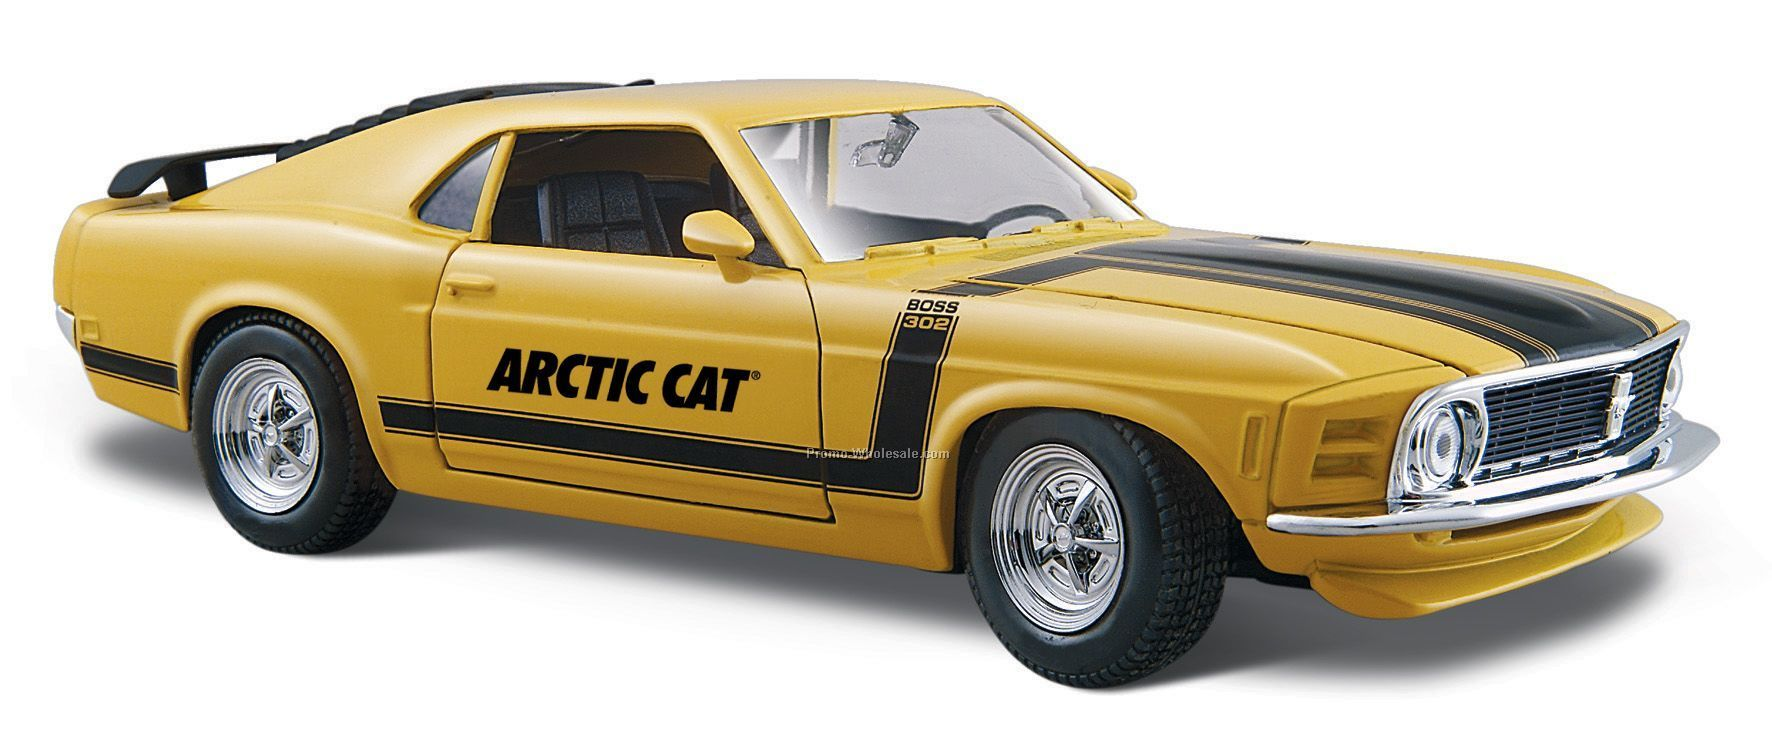 "7""x2-1/2""x3"" 1970 Ford Boss Mustang Die Cast Replica Car"